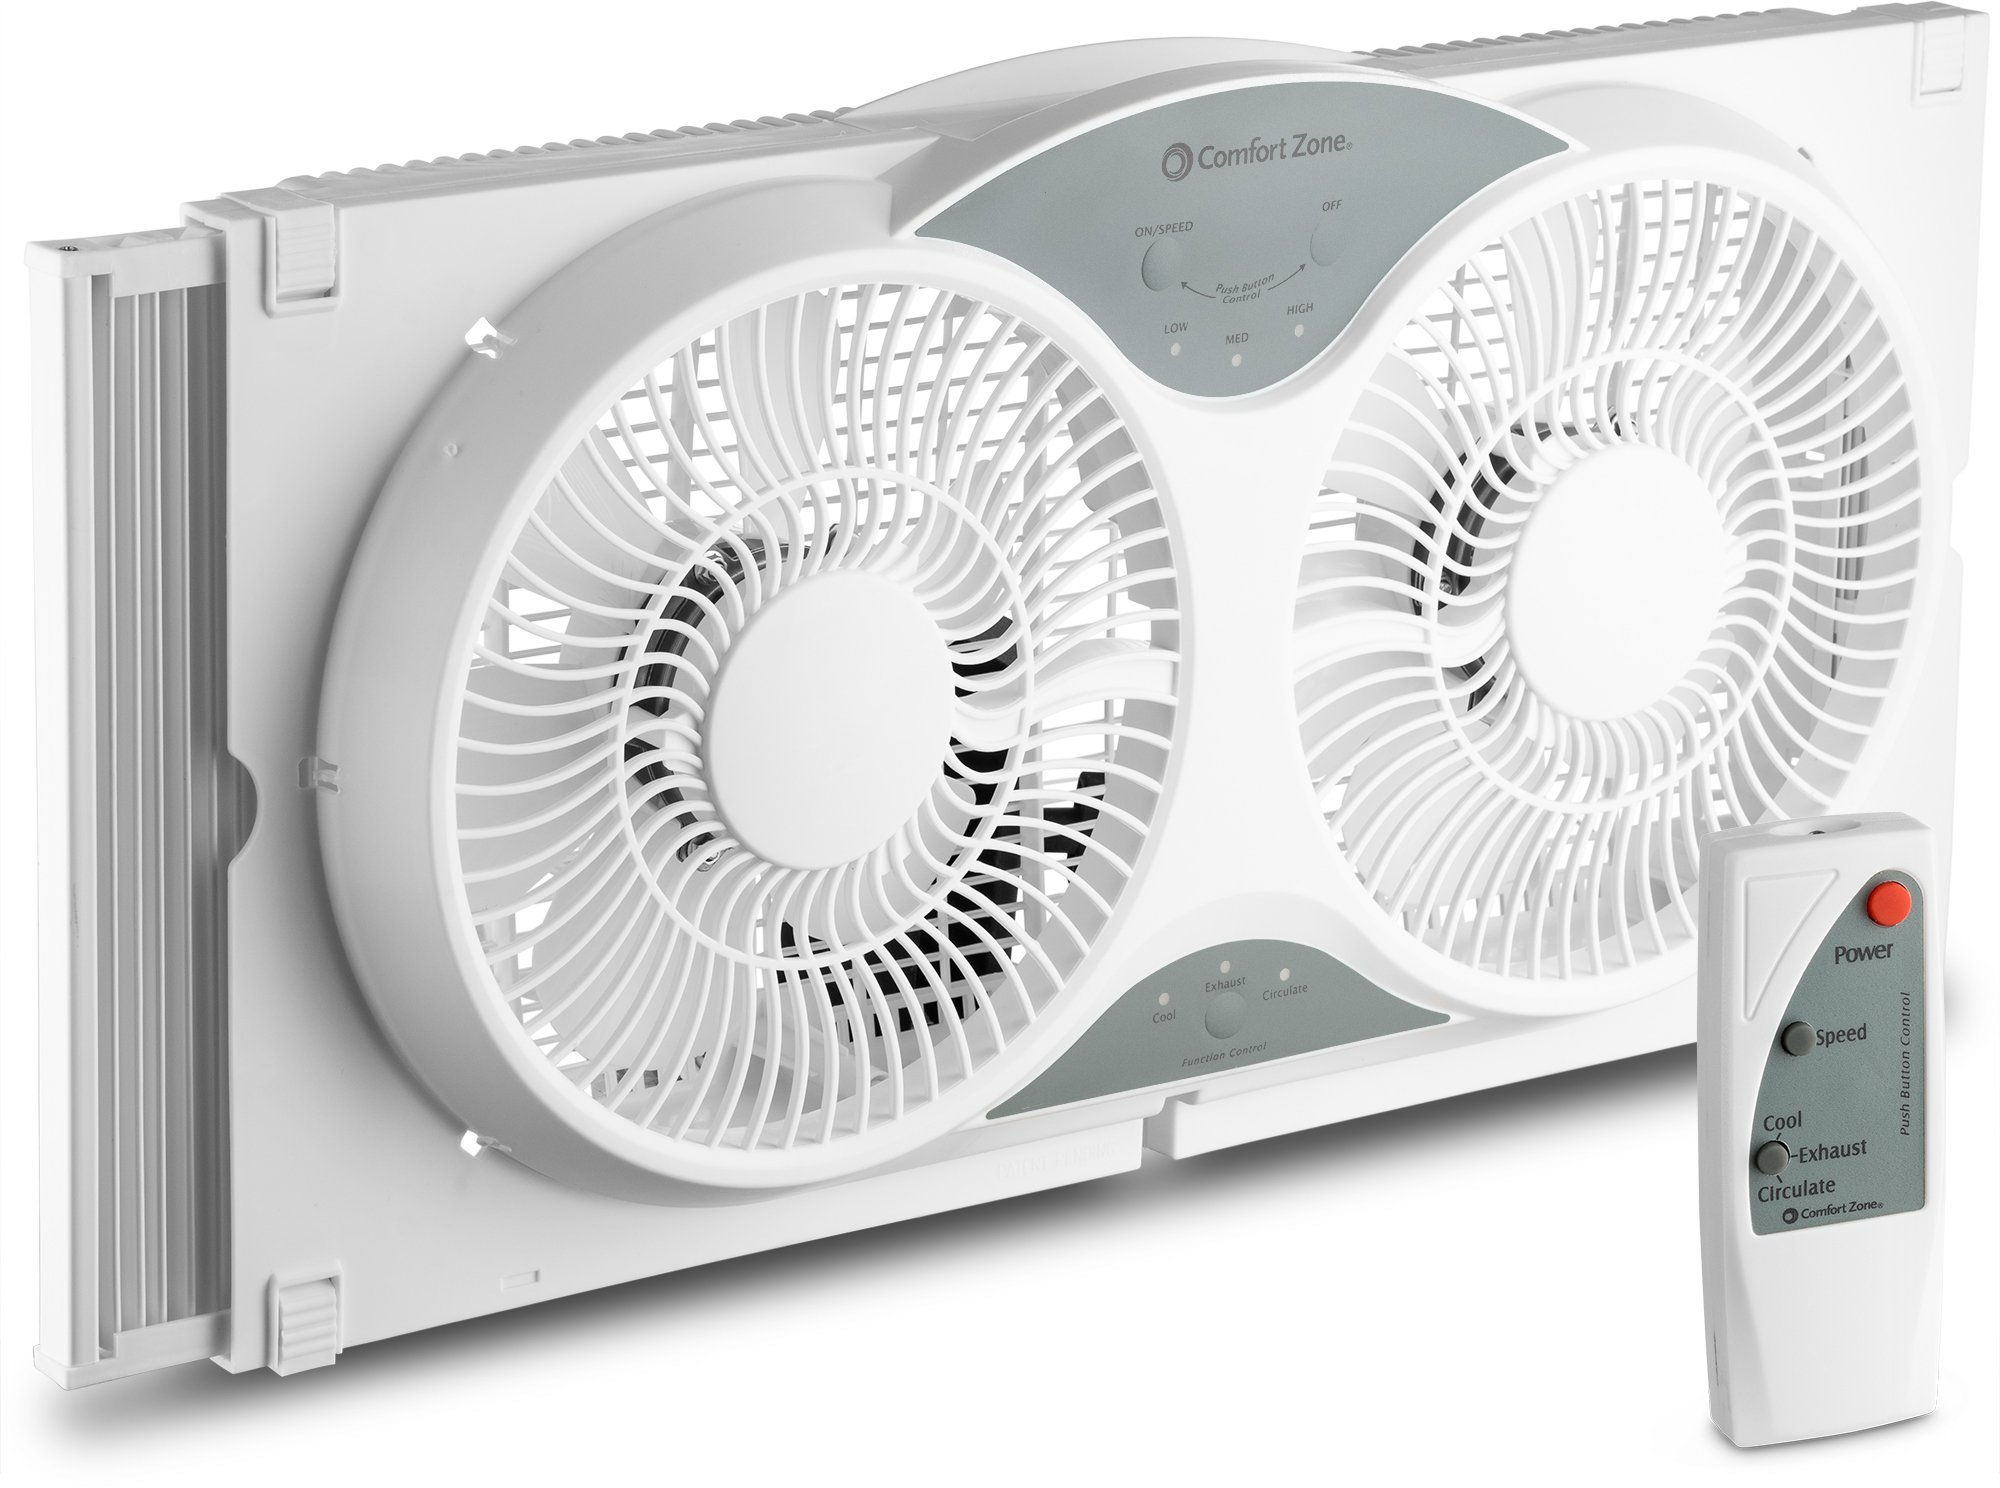 BOVADO USA Twin Window Cooling Fan with Remote Control - Electronically Reversible - Includes Bug Screen & Fabric Cover - Locking Extenders to fit Large Windows (Min. 23.5'' Max. 37'') by Comfort Zone by BOVADO USA